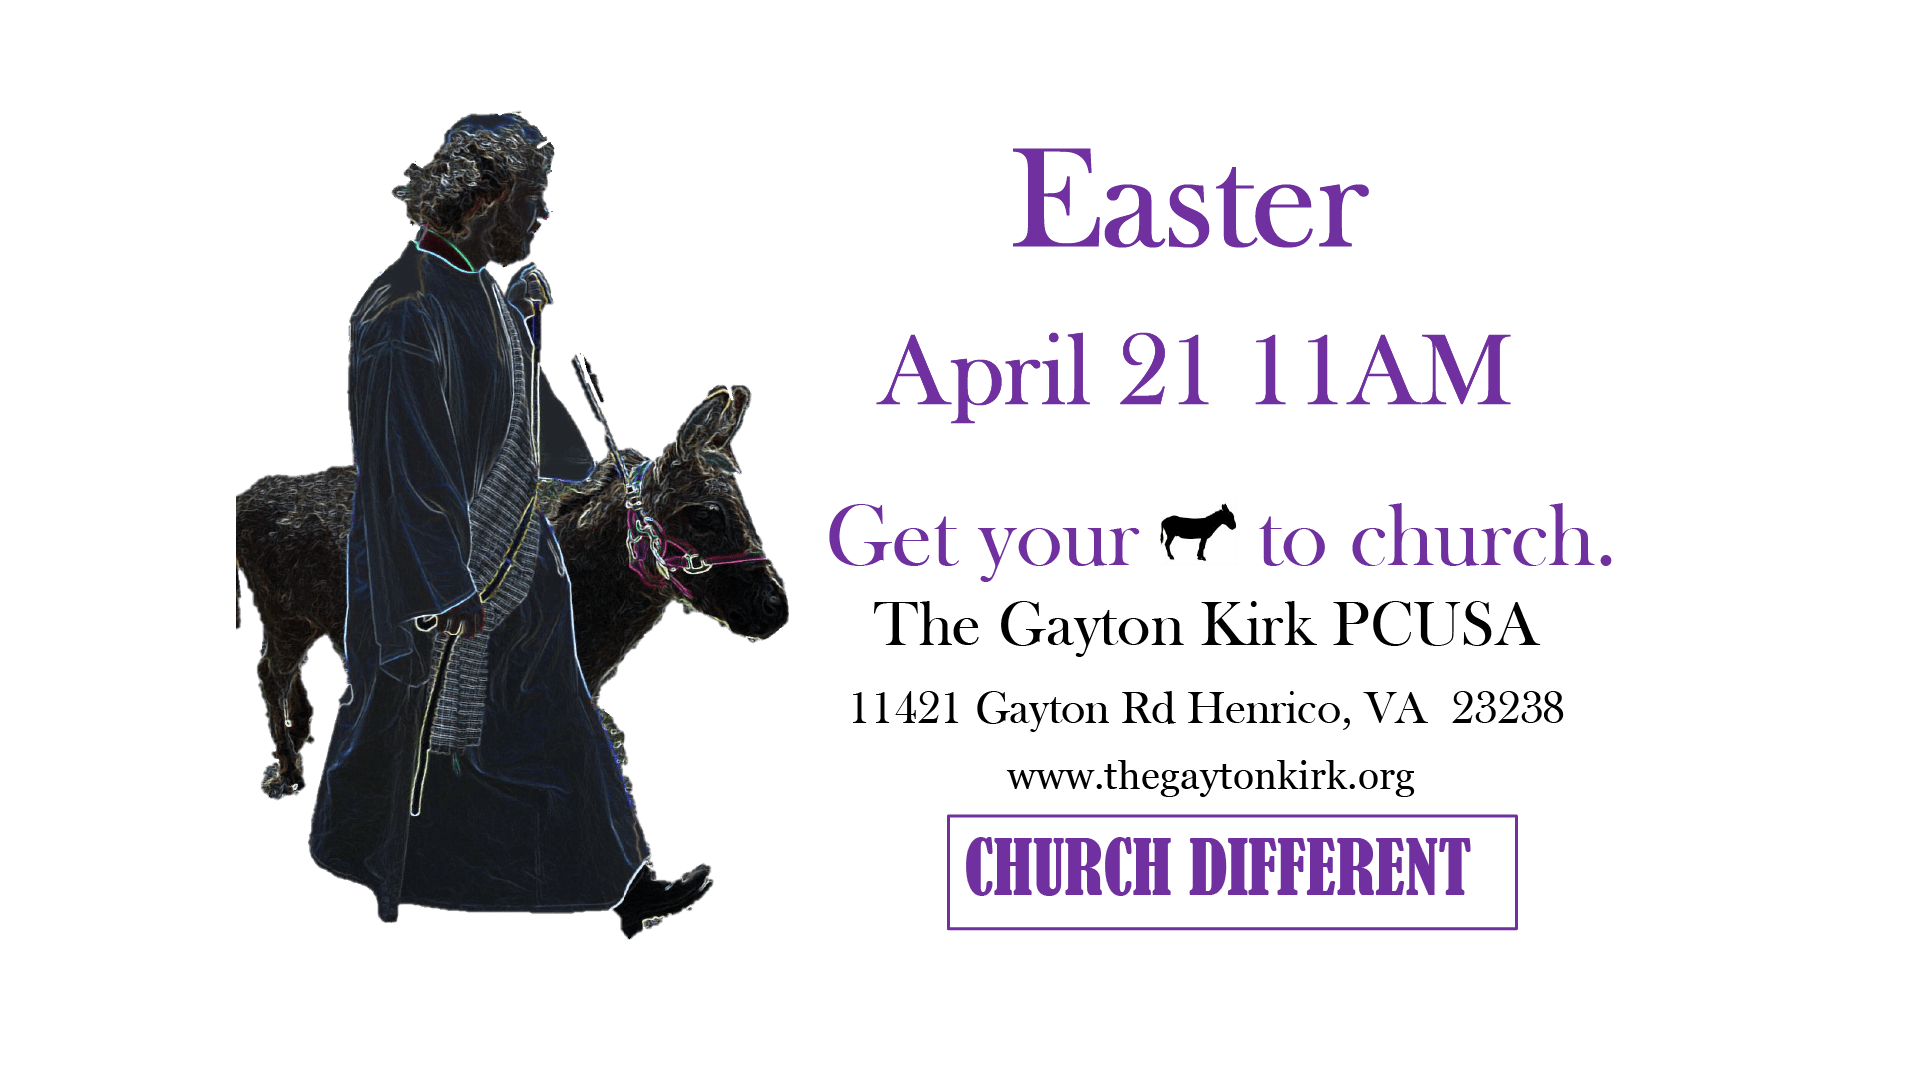 Poster for Easter 2019 at The Gayton Kirk Presbyterian Church USA in Richmond / Henrico